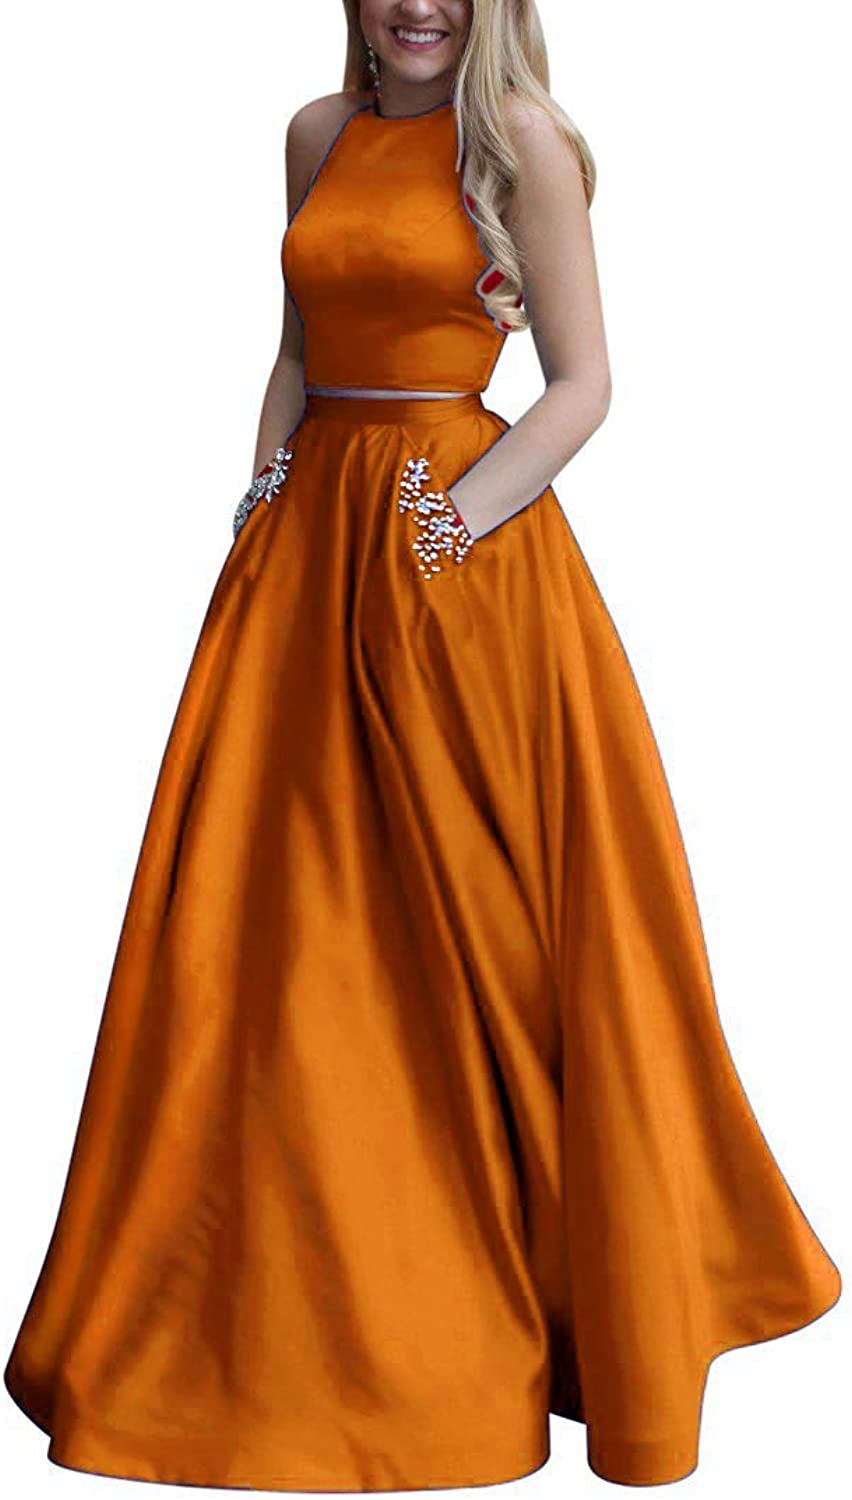 Liangjinsmkj Halter Prom Dresses Long Two Piece Beaded Satin Halter Formal Evening Gown with Pockets Navy